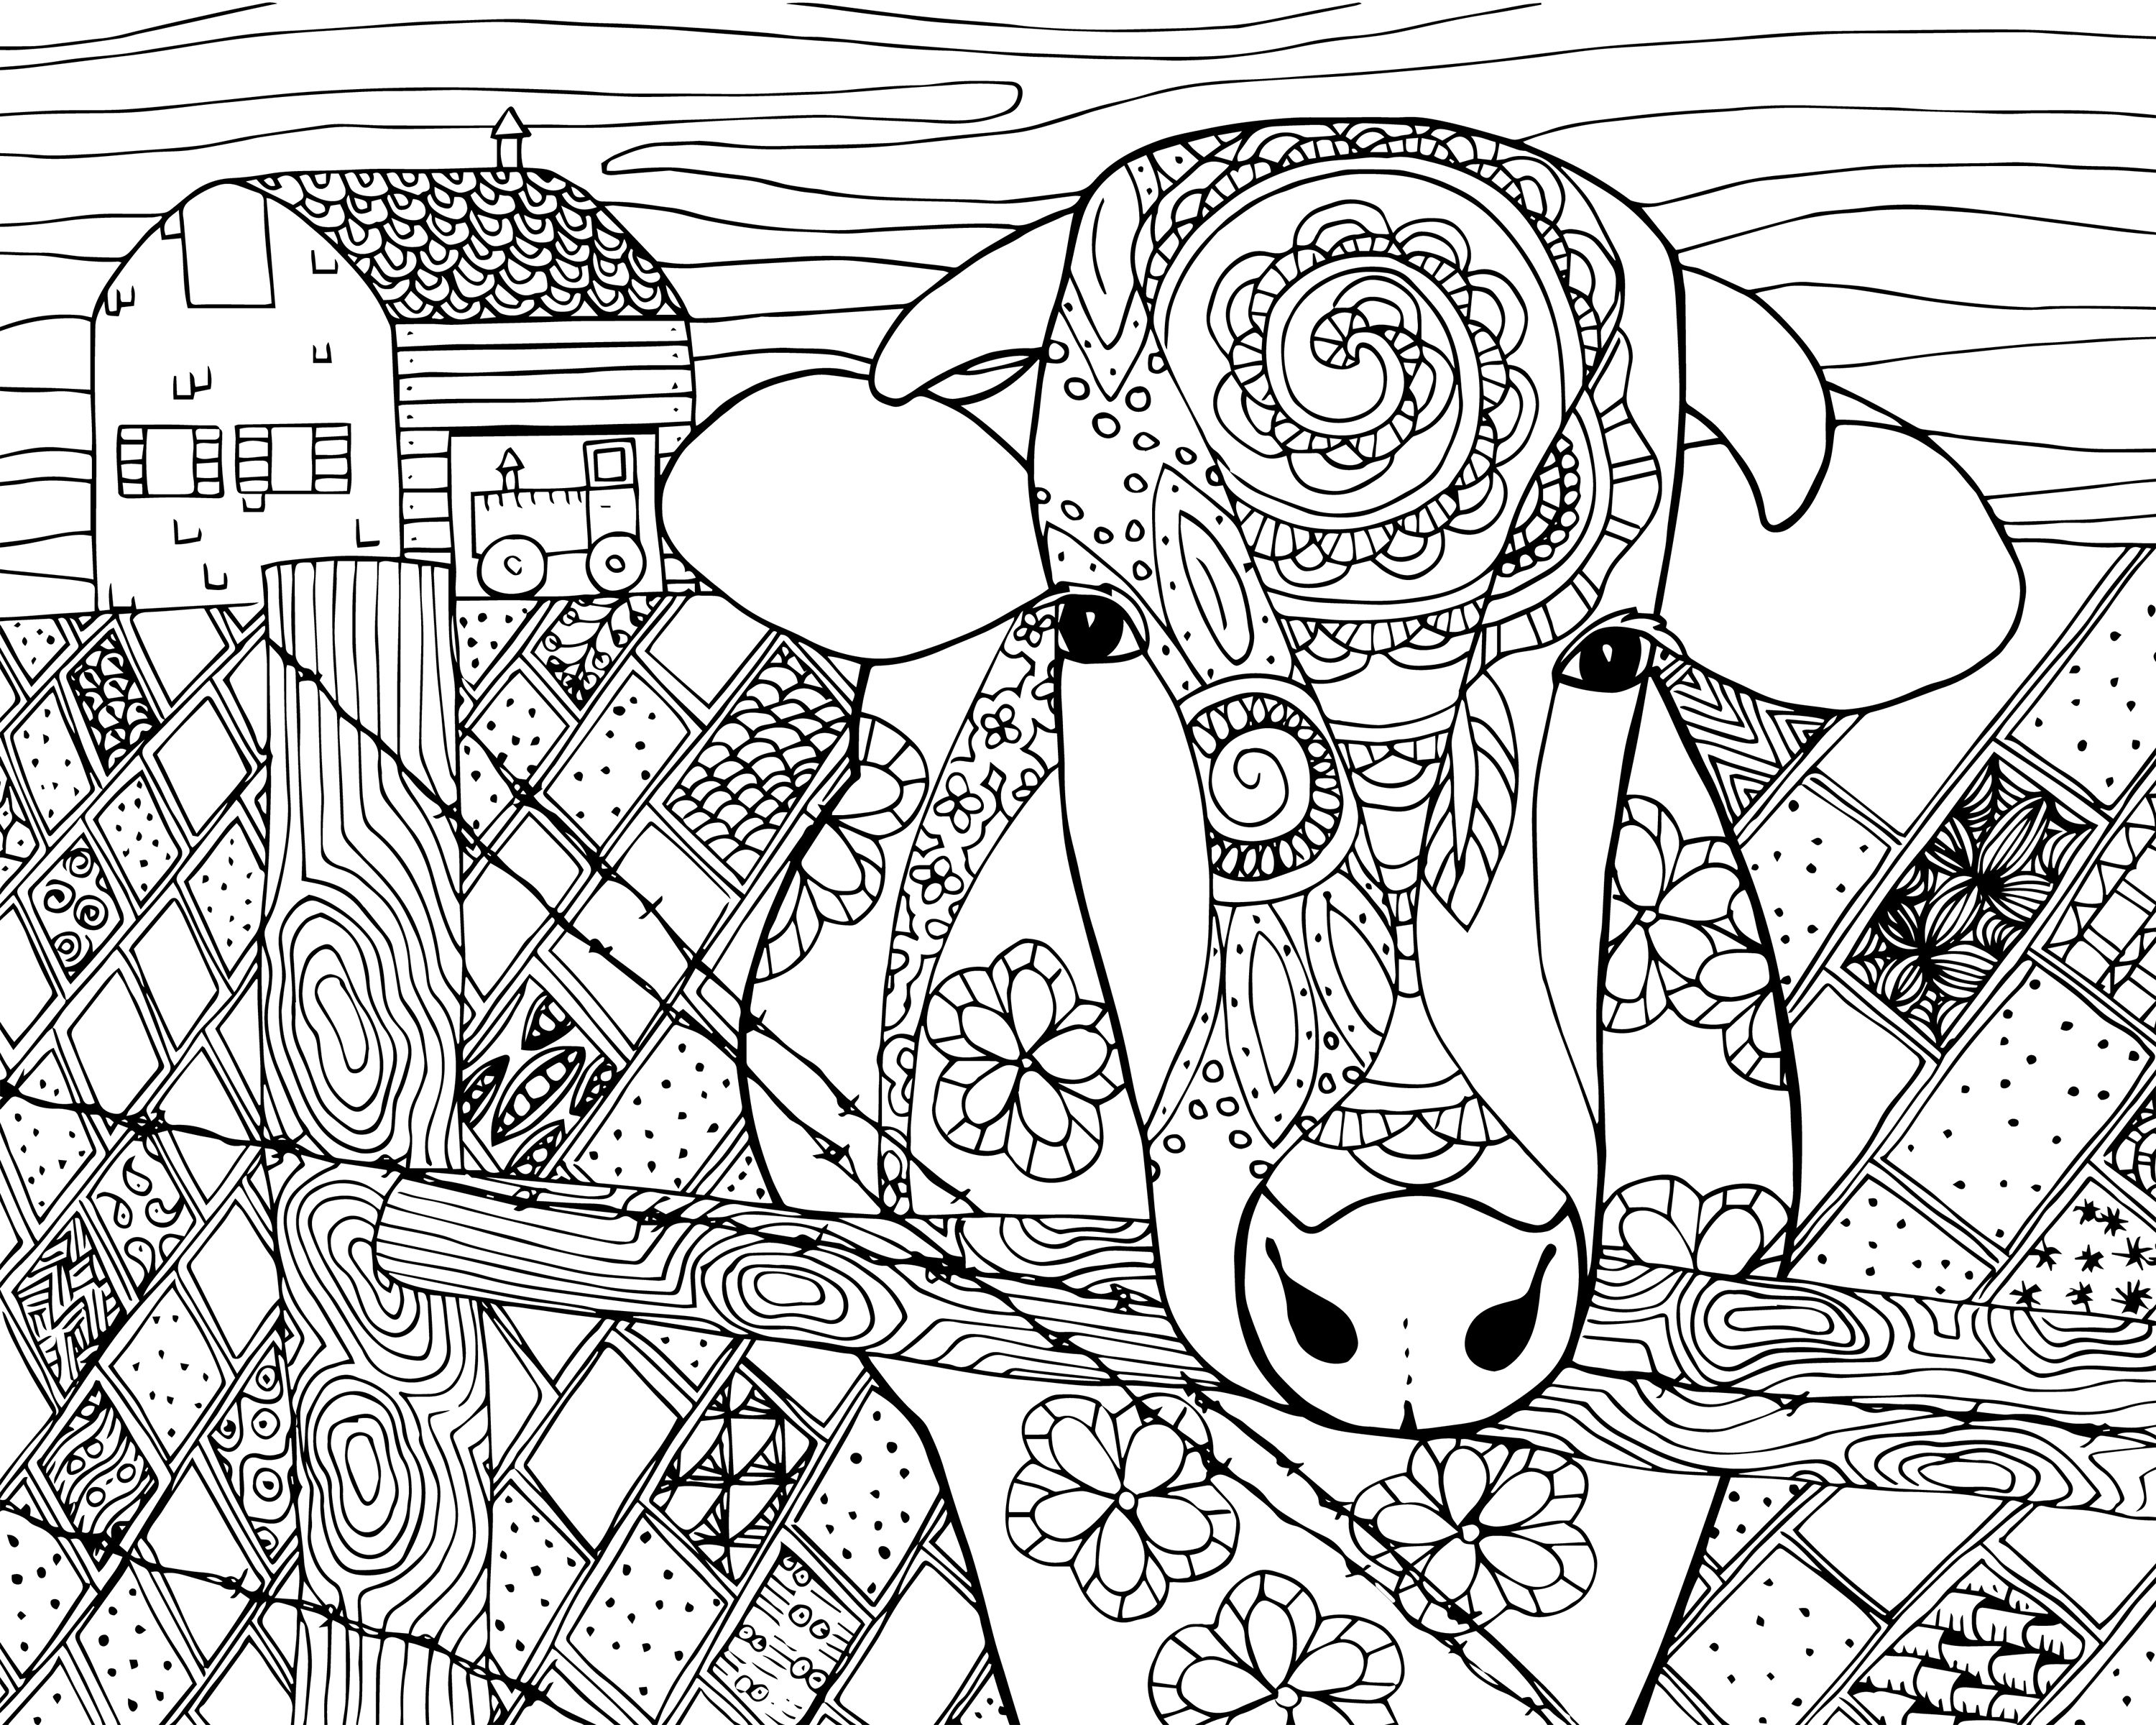 Coloring pages for adults abstract - Free Coloring Pages Adults Art And Abstract Category Image 62